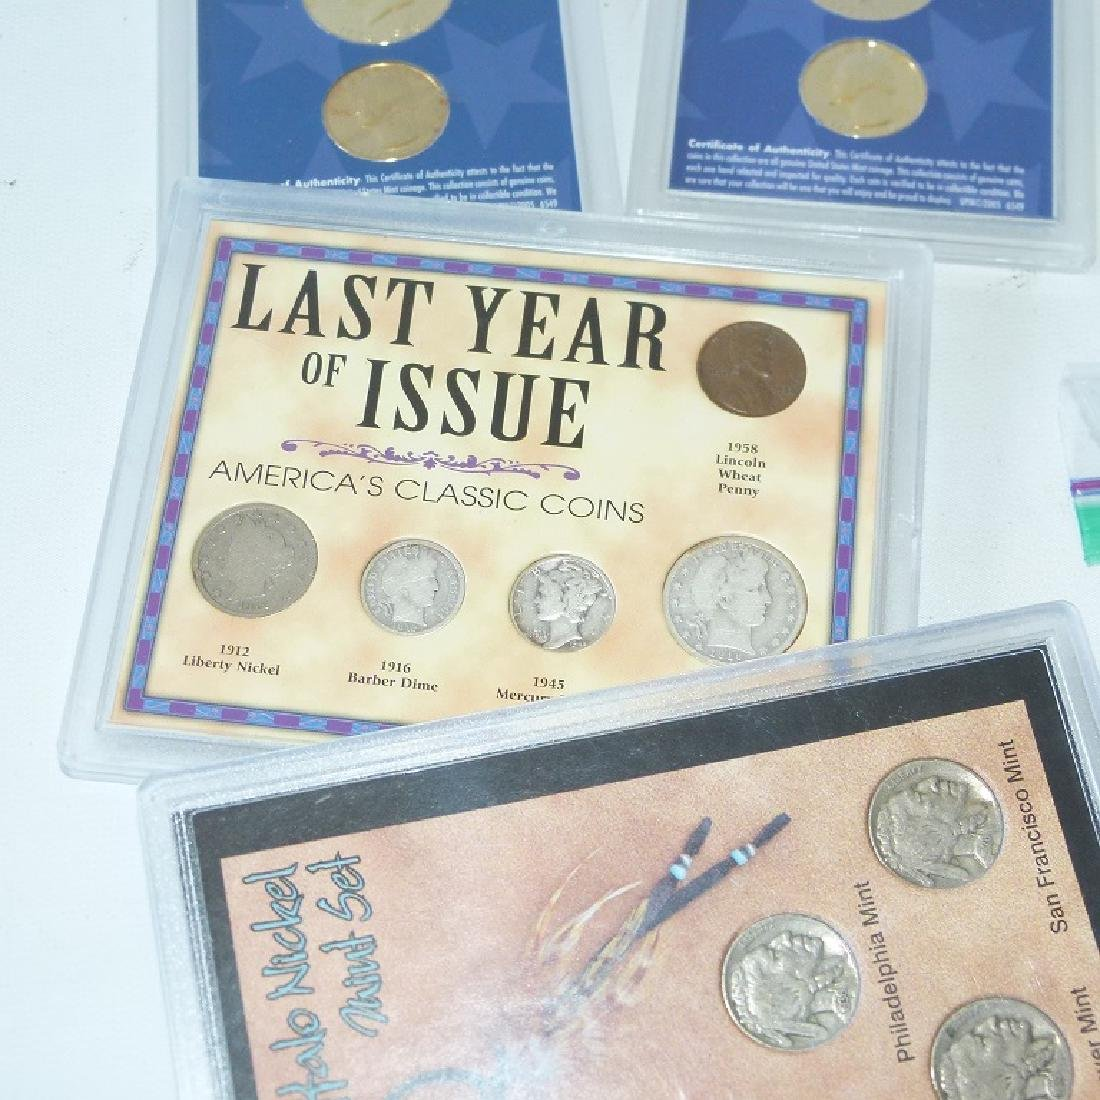 LOT ASSORTED COMMEMORATIVE COINS/ROLLED WHEAT - 2